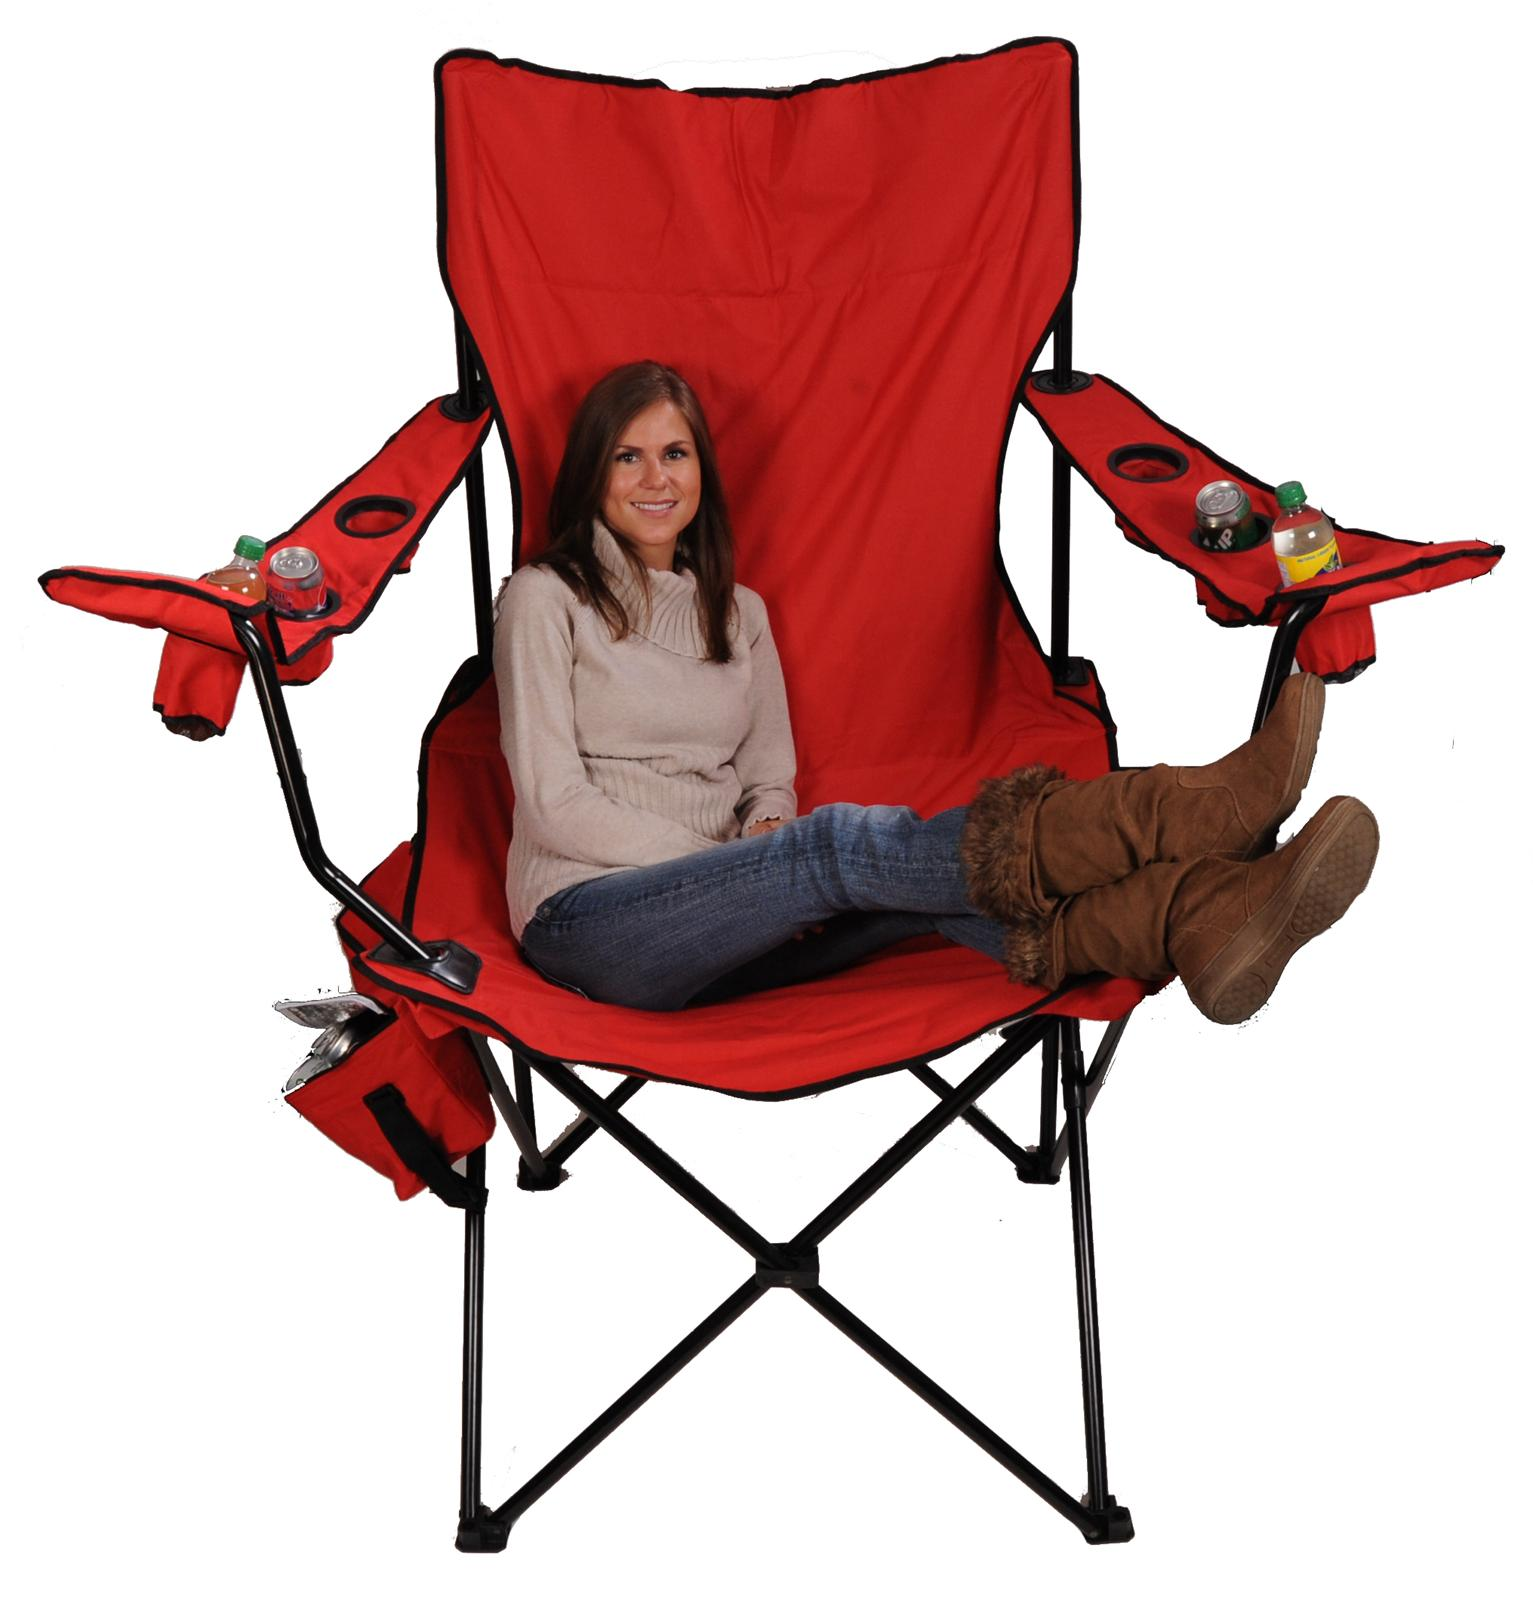 Red Kingpin Folding Chair 7002 Free Shipping on Orders Over $99